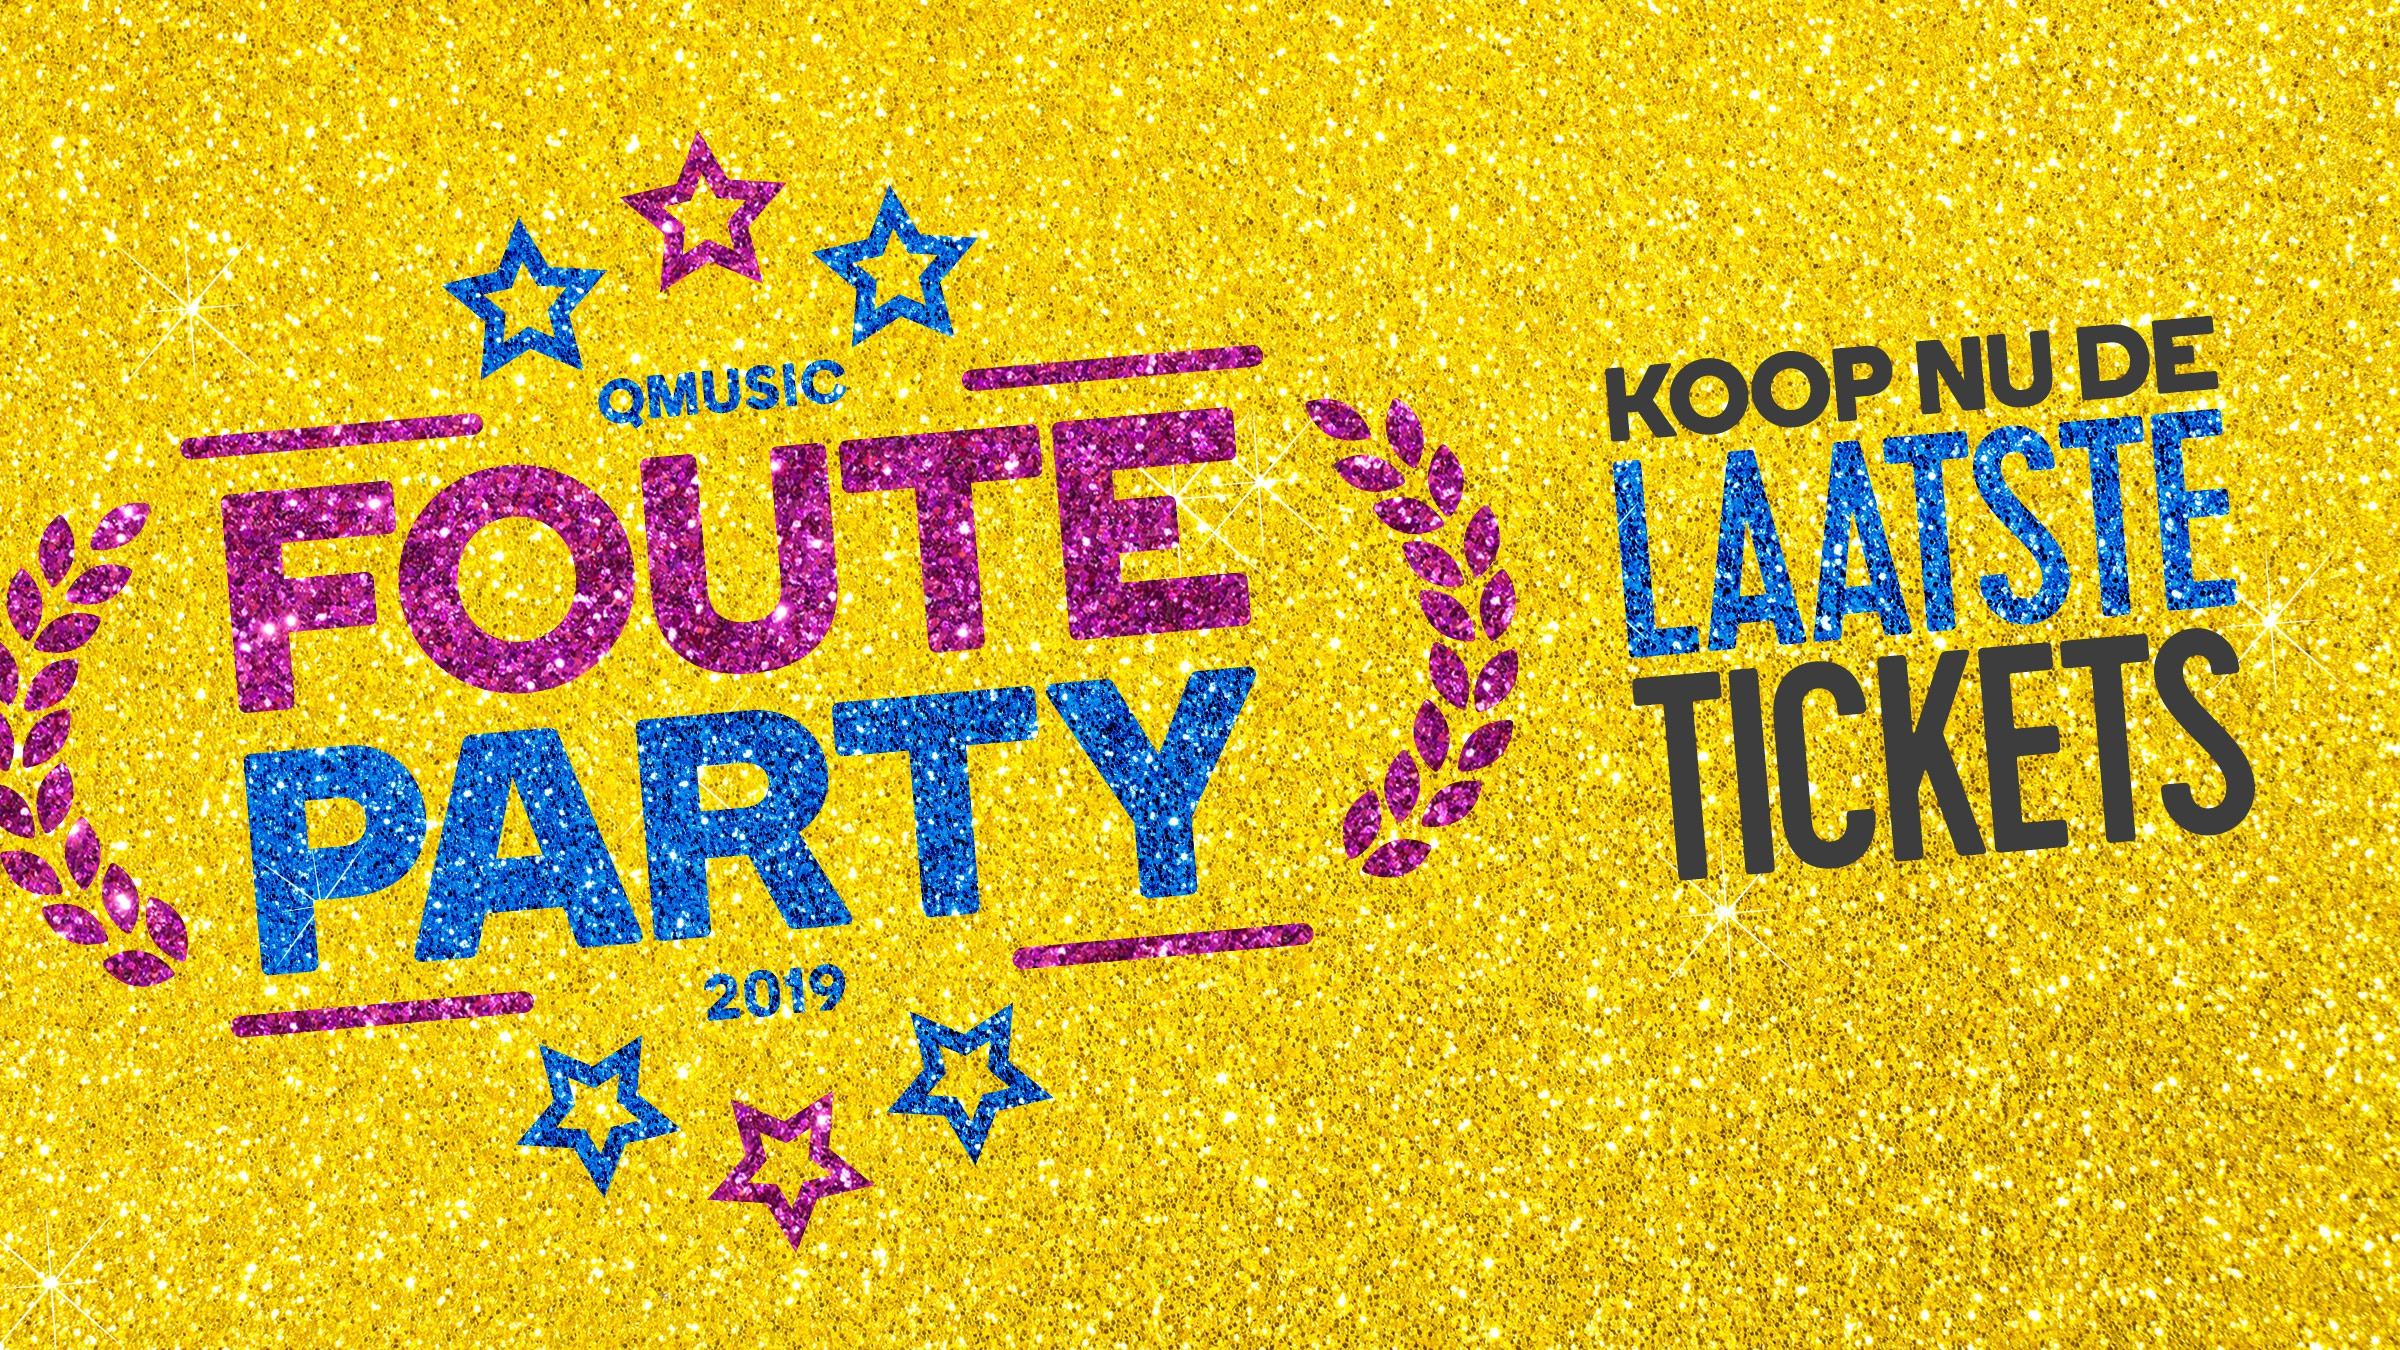 Qmusic teaser fouteparty2019 laatste